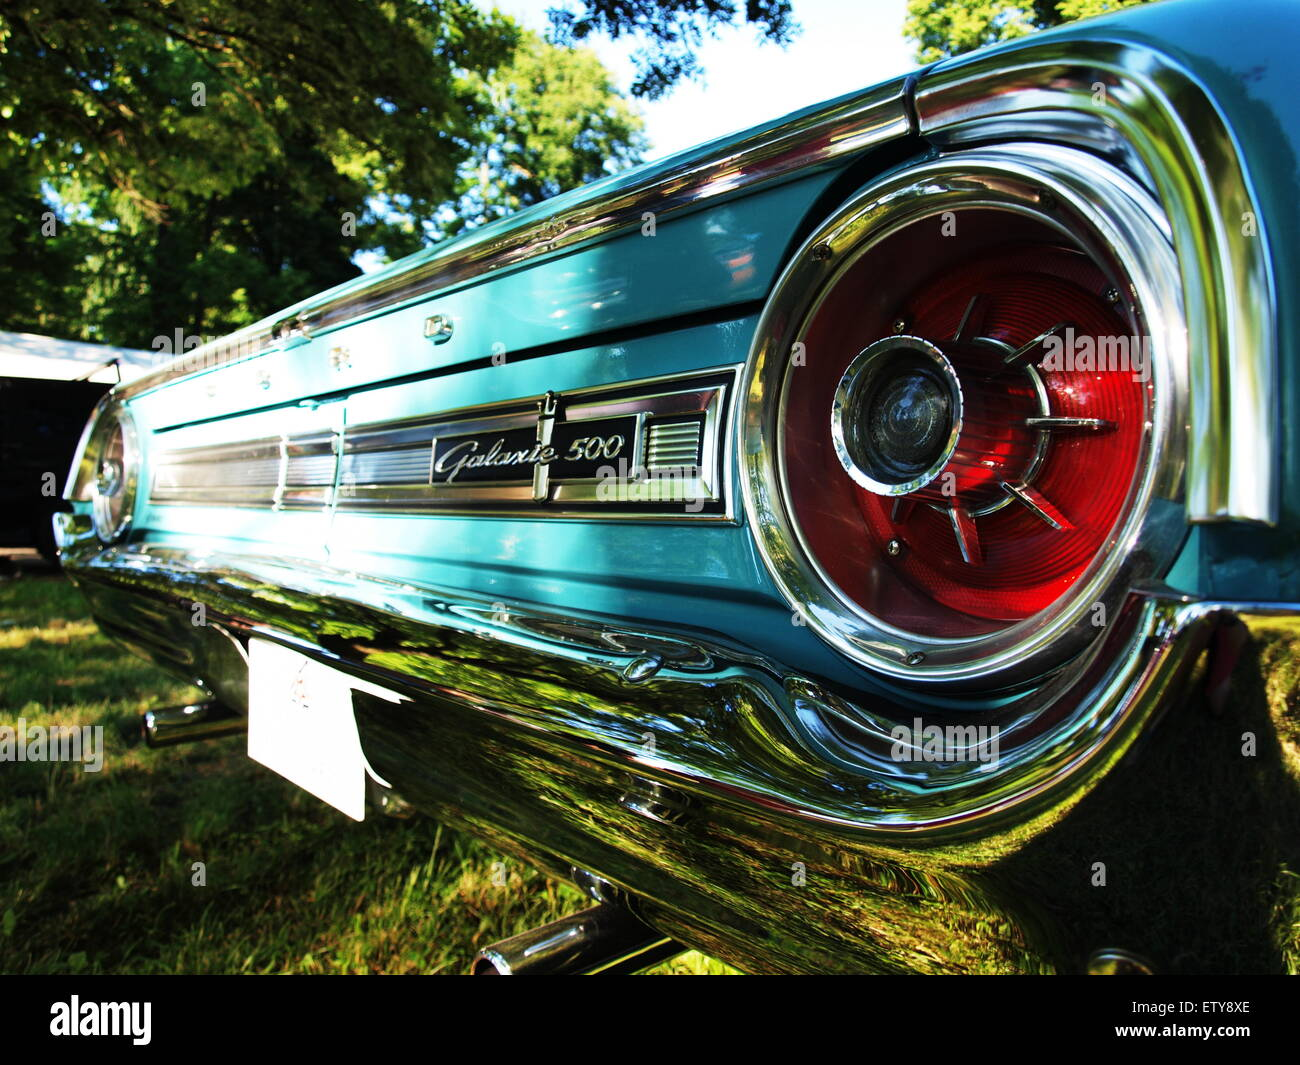 Old Beauty Never Dies Ford Galaxy 500 Stock Photo Alamy